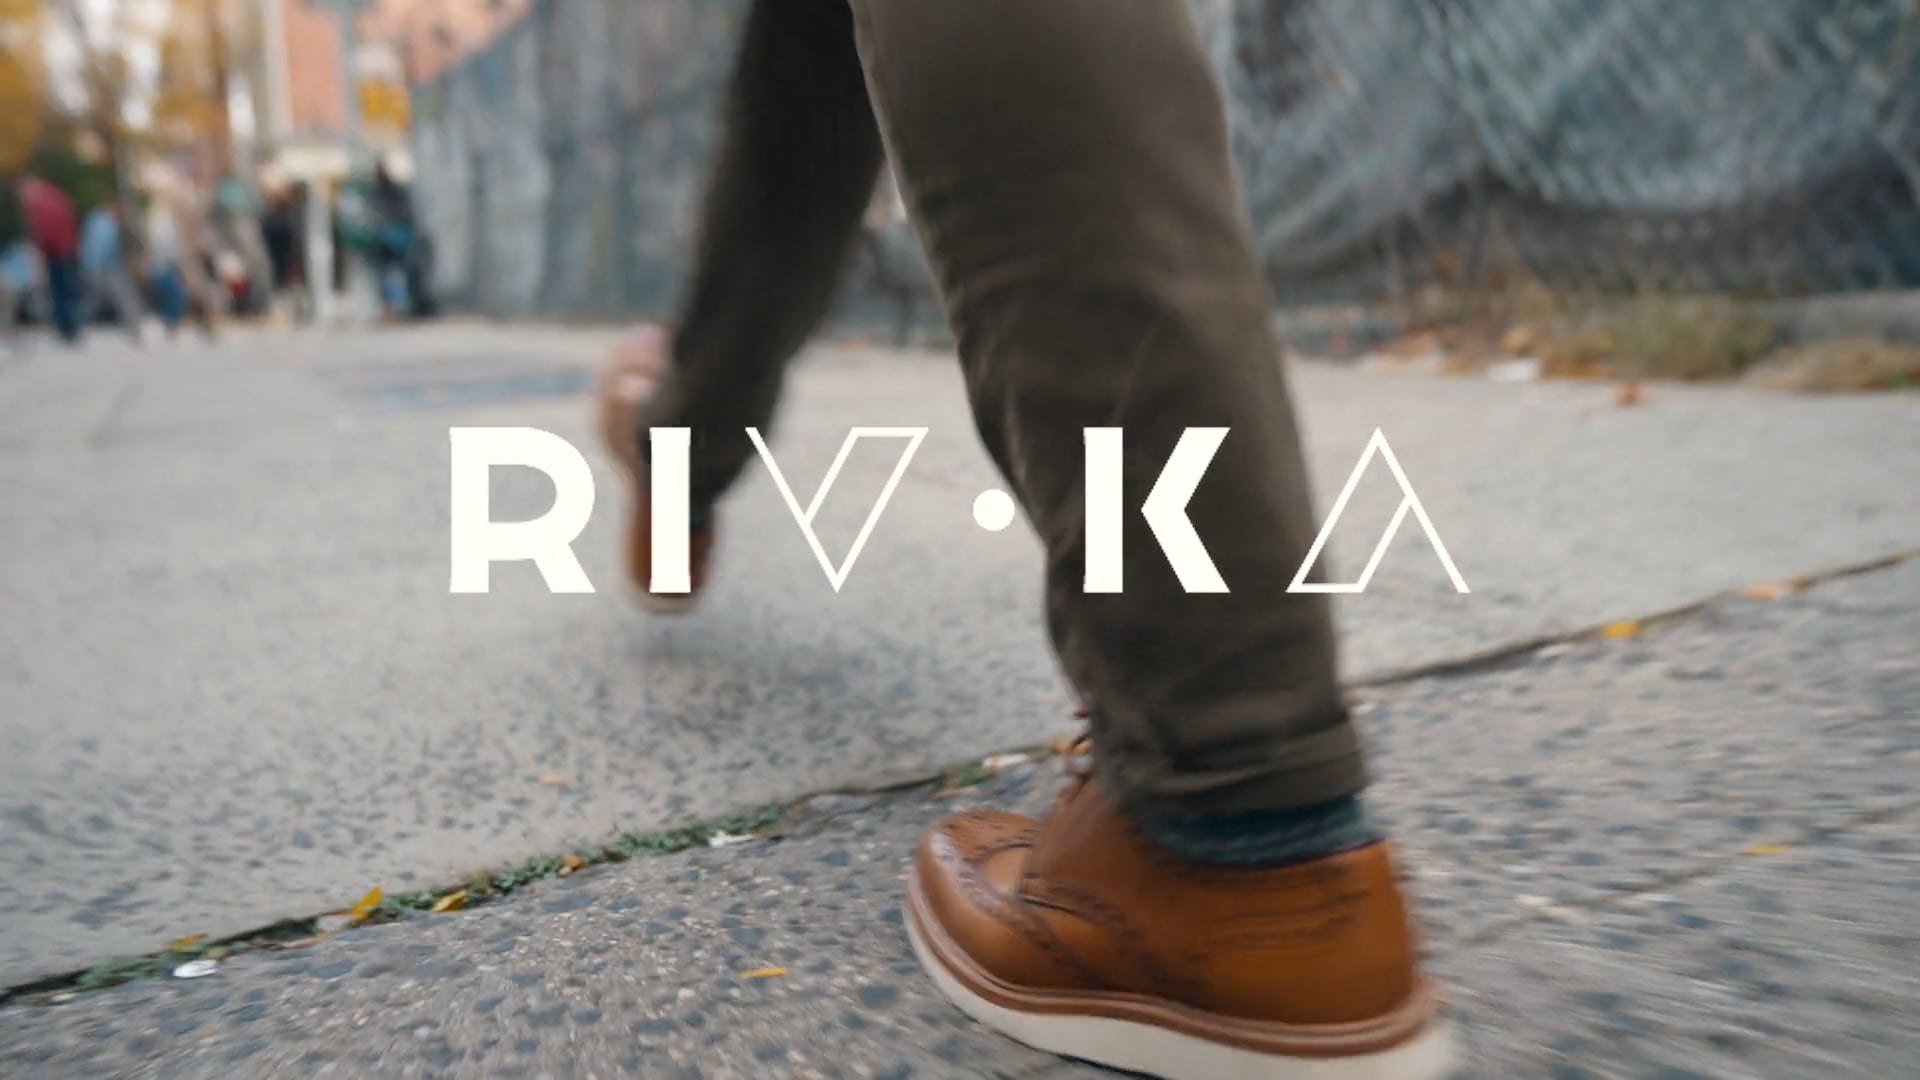 RIVKA Shoes Commercial - Part I